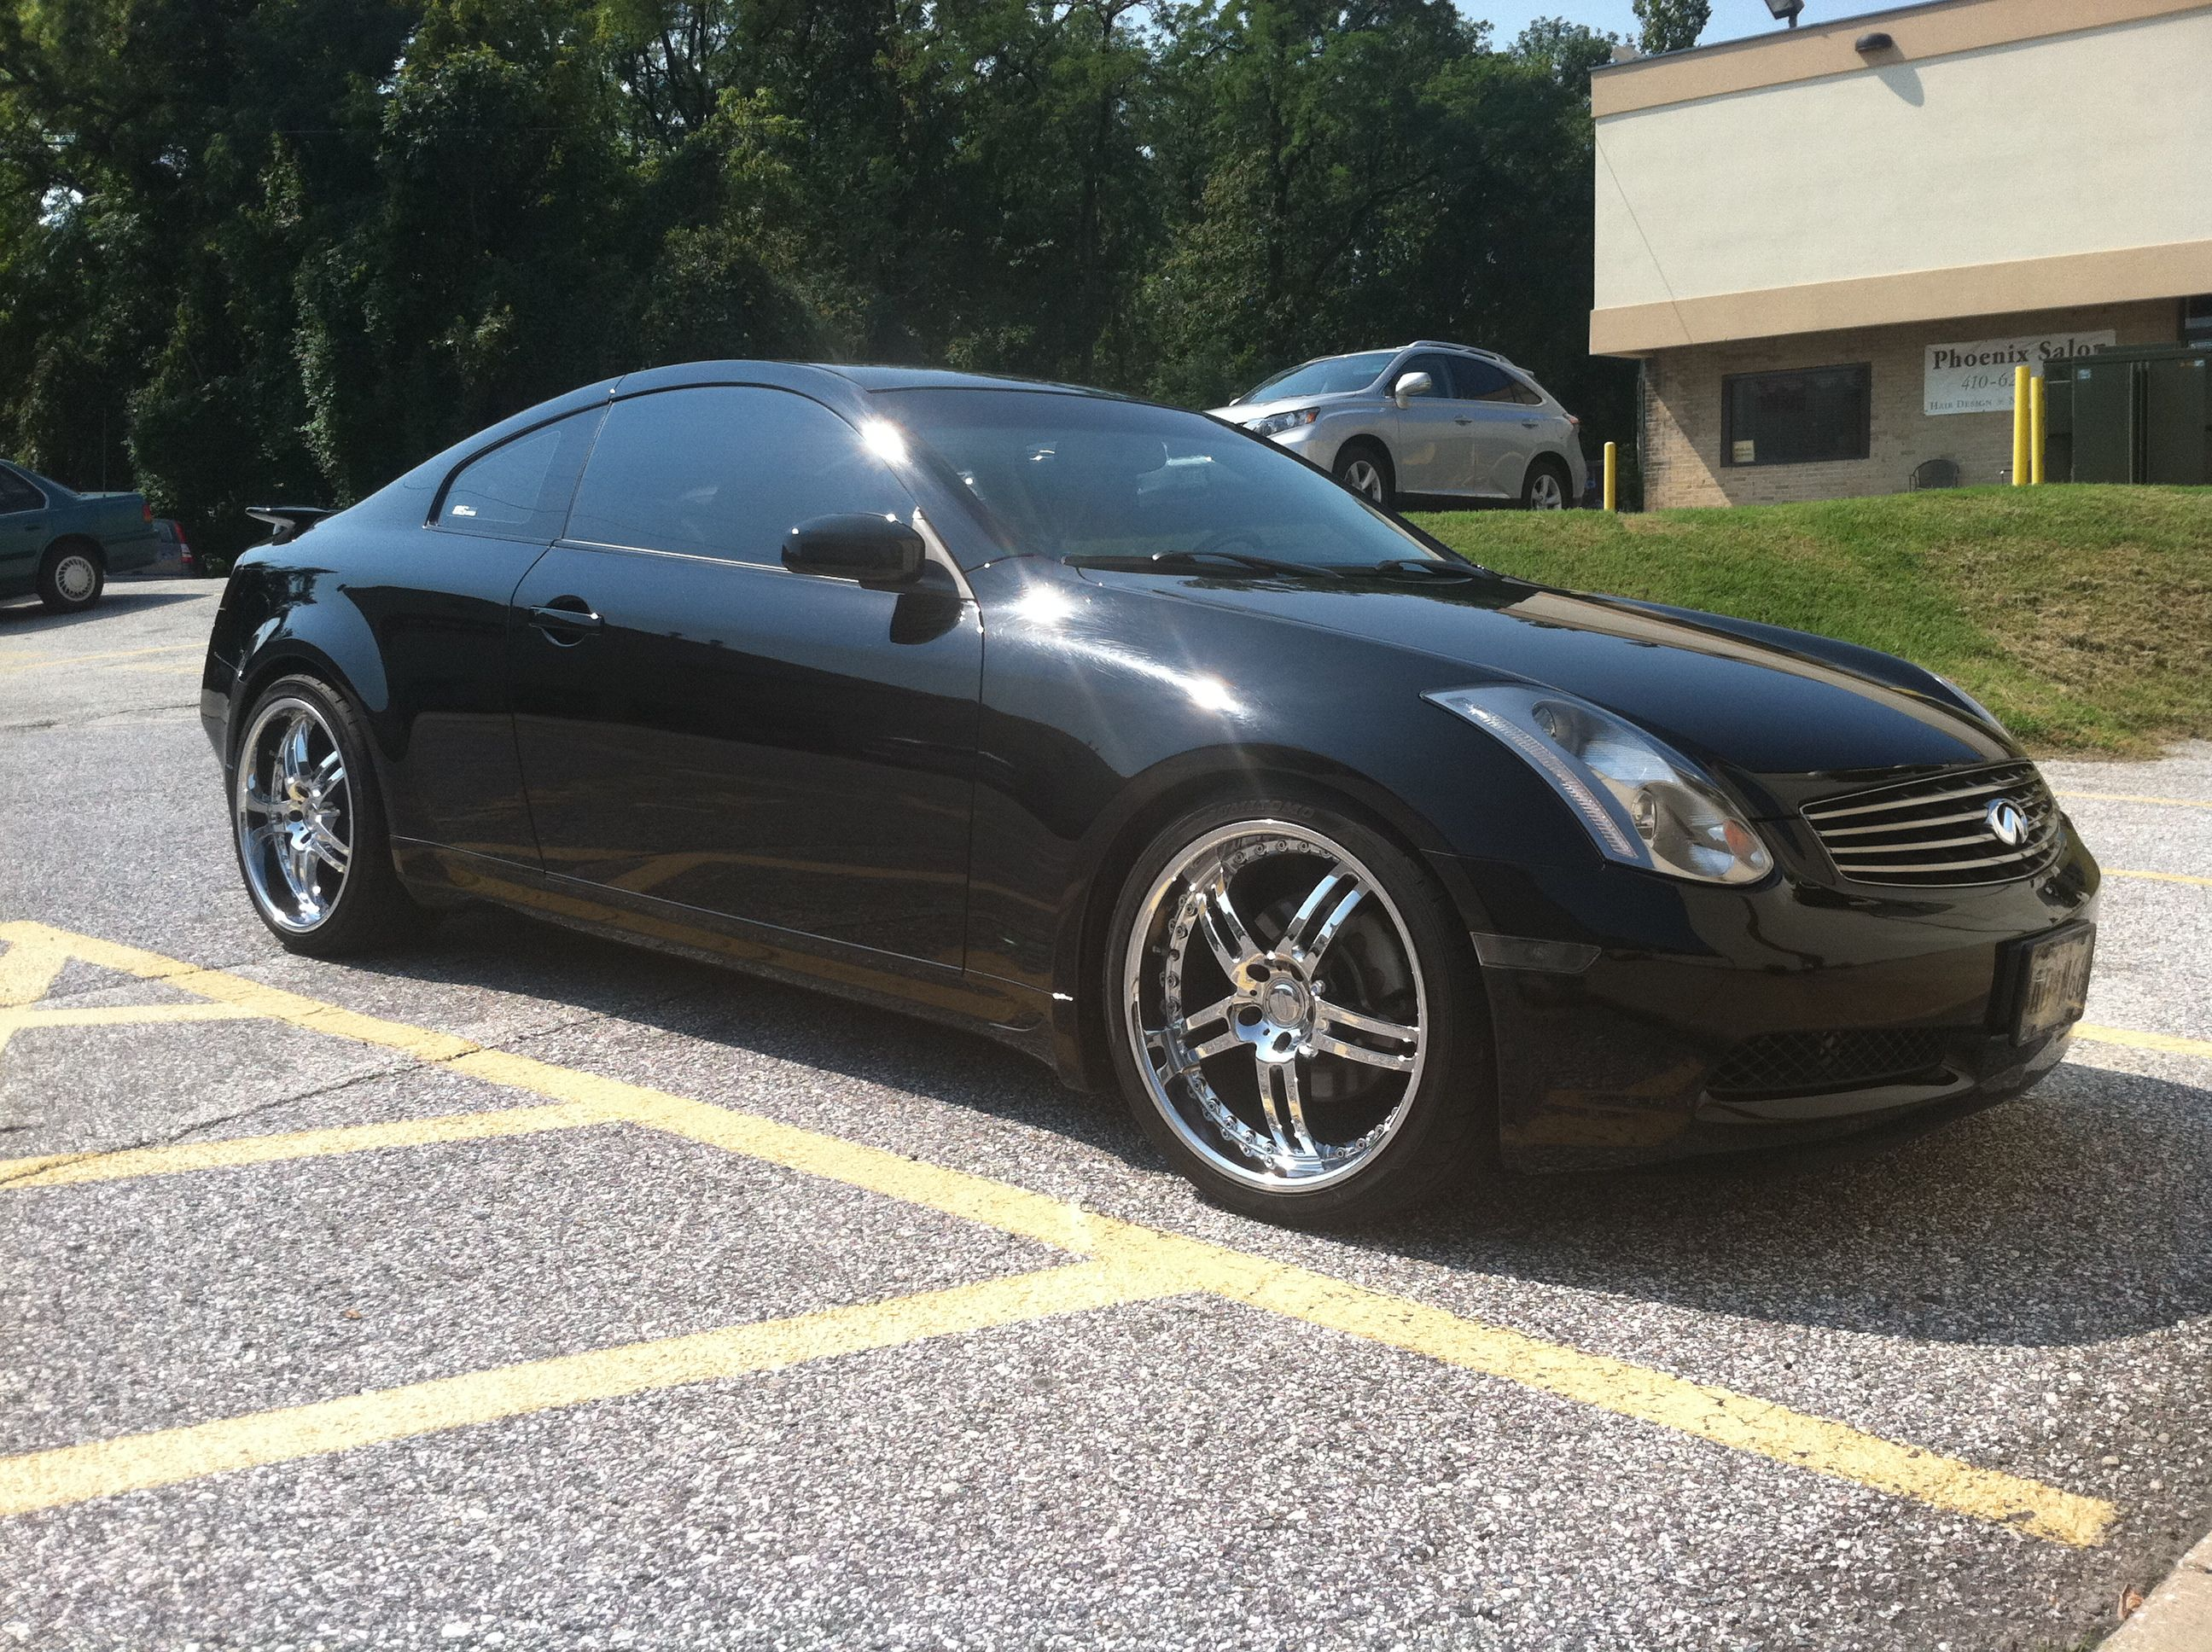 05 G35 Coupe Supercharged Black 2005 Infiniti G35